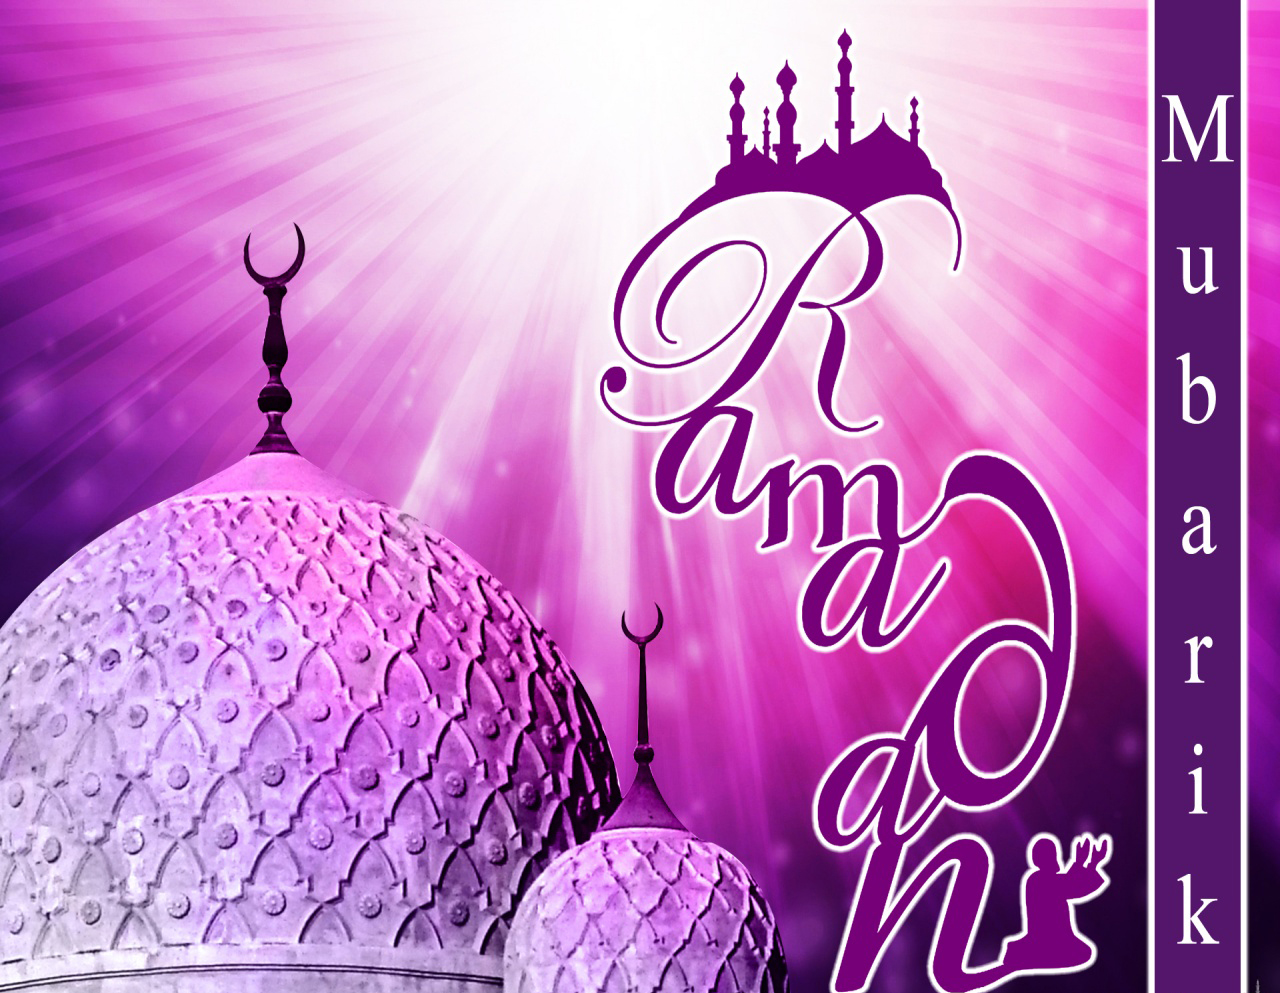 Download Free HD Wallpapers Of Ramadan Kareem